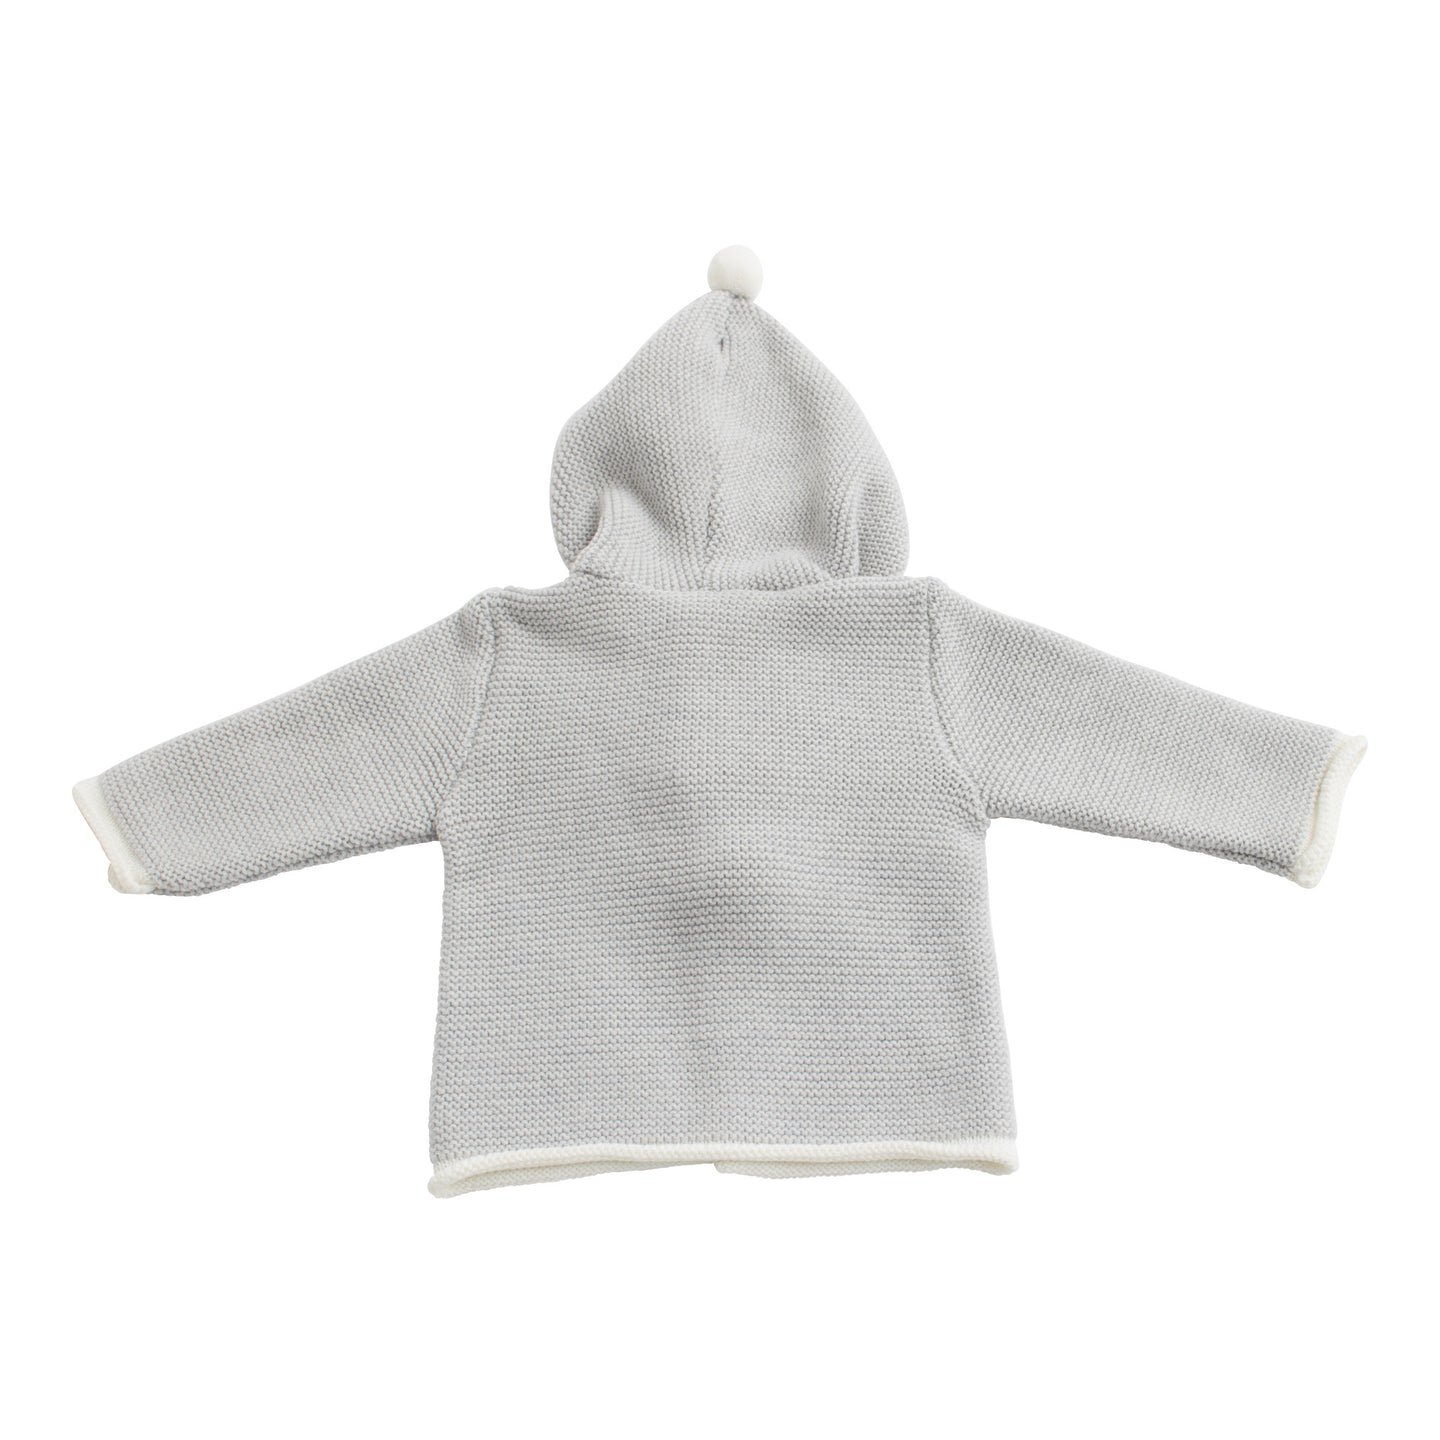 7ac3a7a3c Baby Boutique, Knitted Baby Clothes, Warm Knitted Designer Coat ...